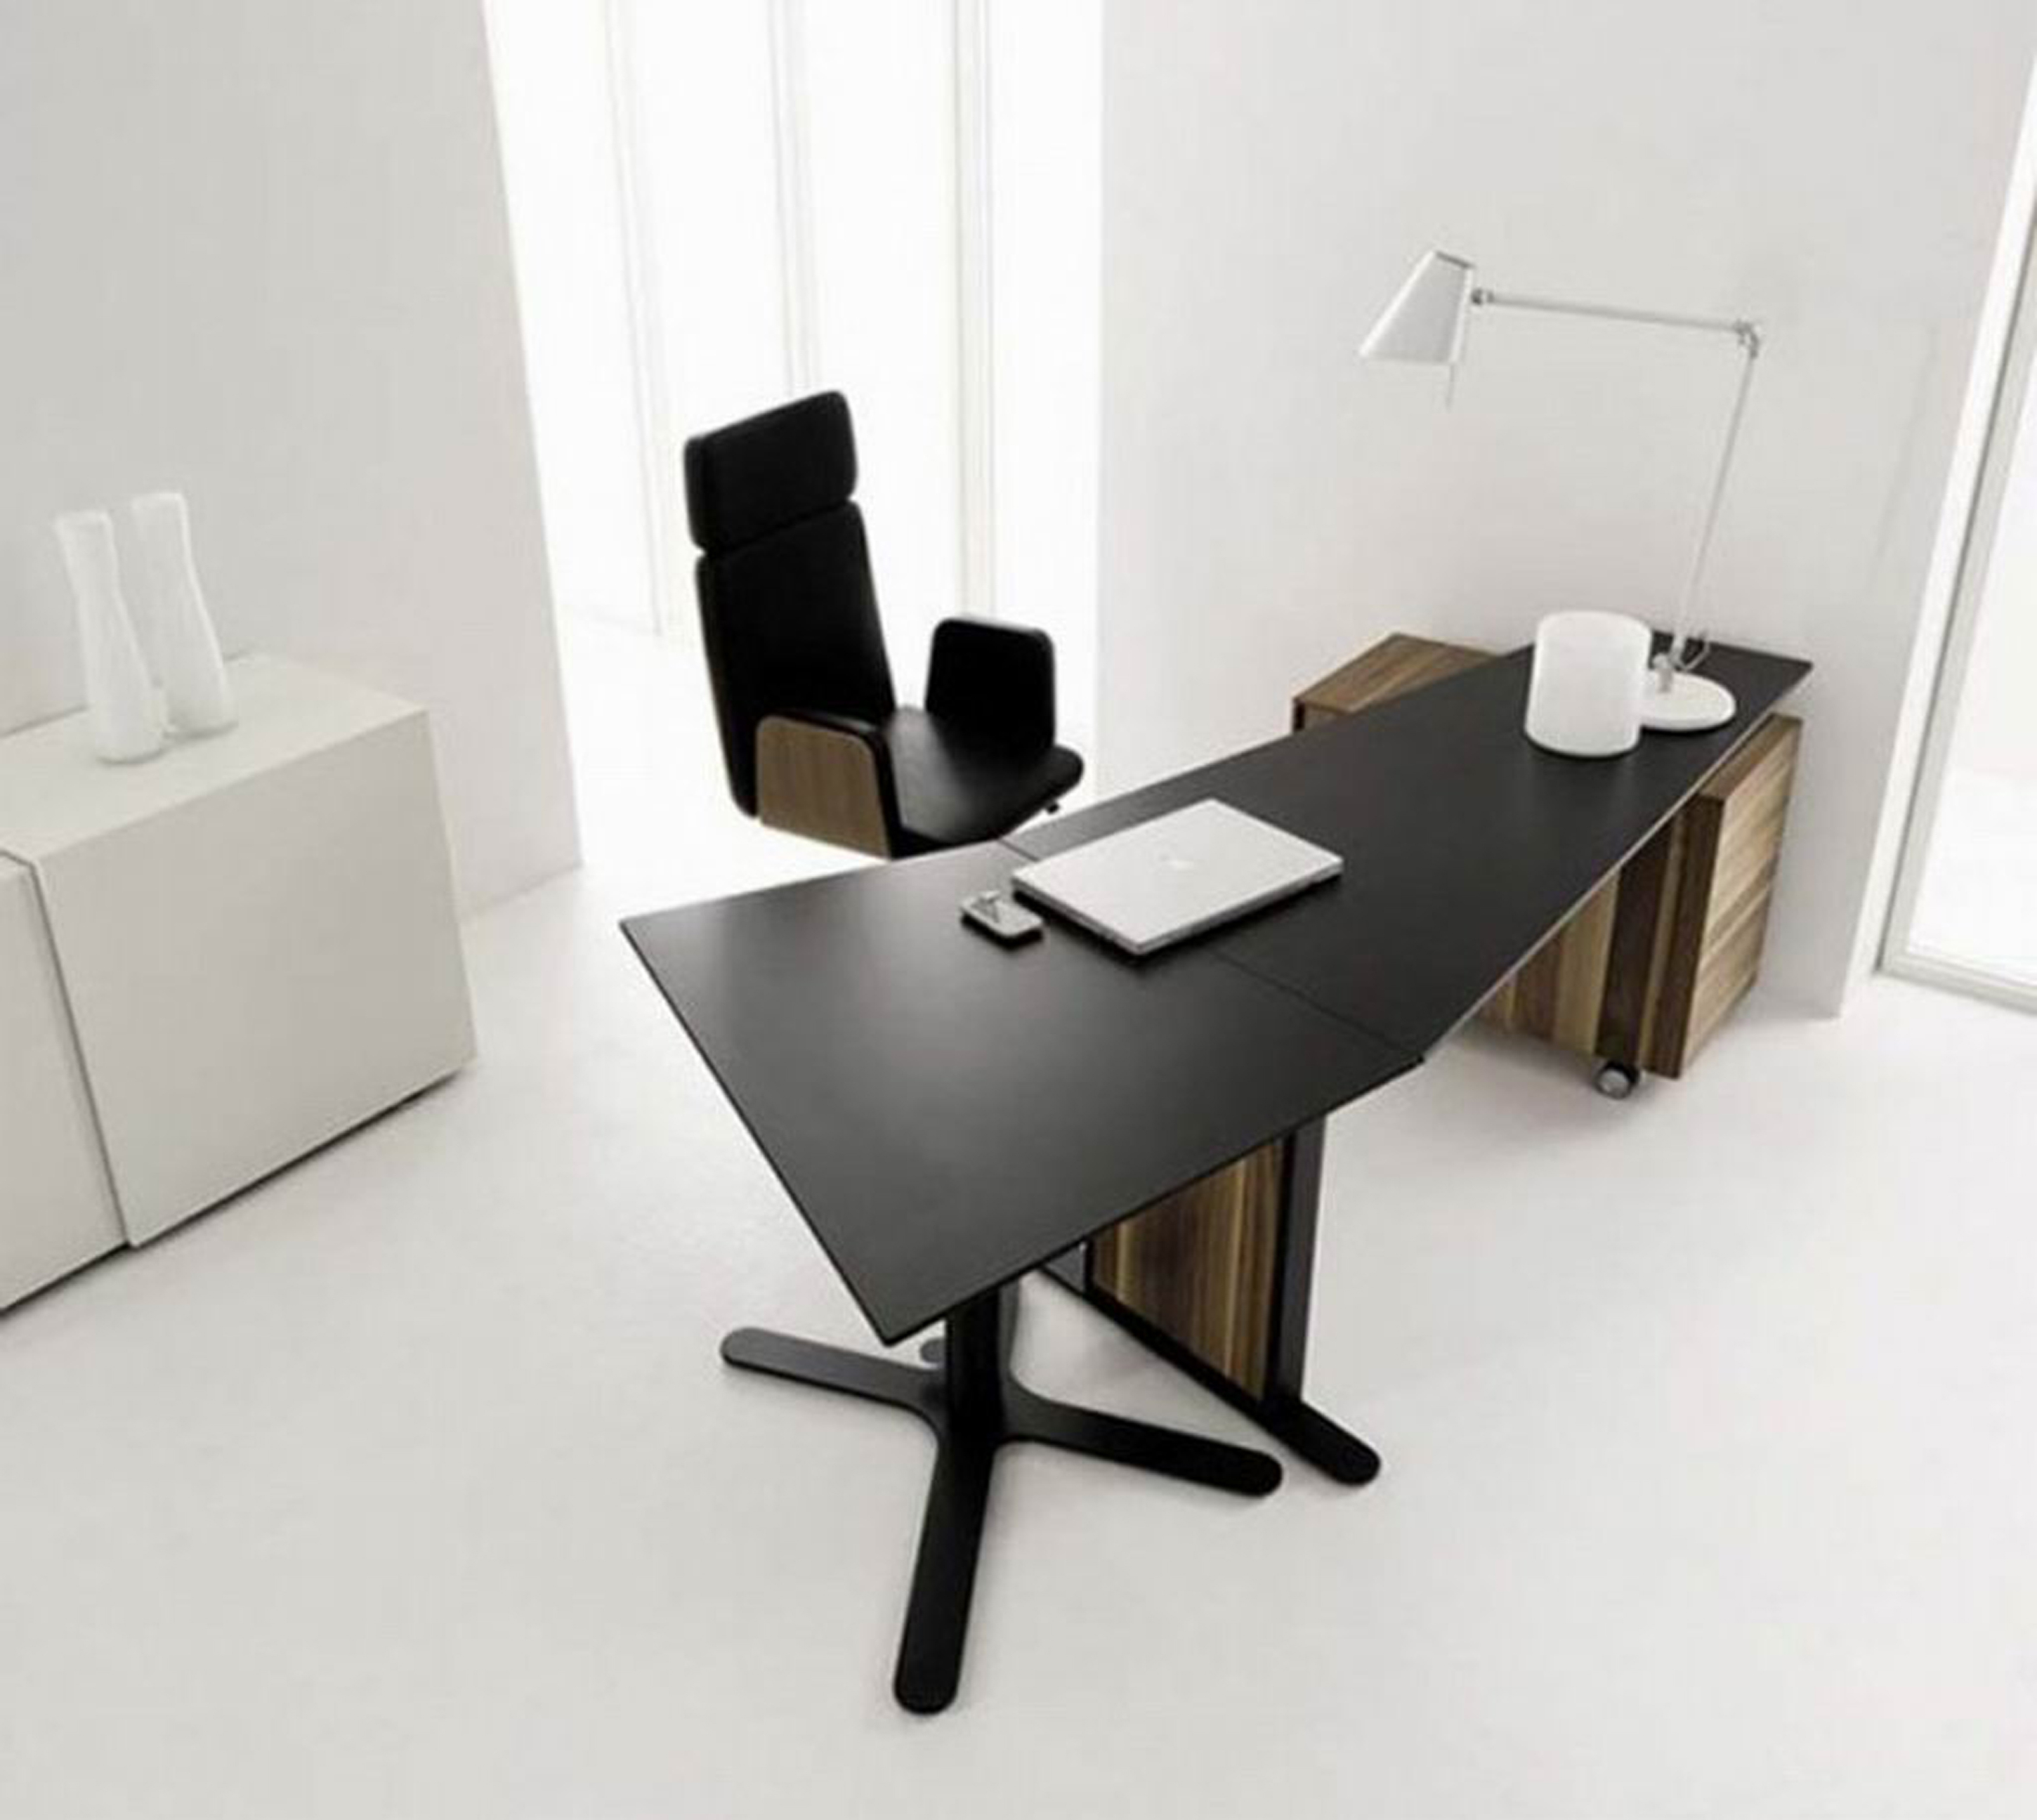 Lovely Modern Home Office Desk Design Idea In Black With White Desk Lamp White Laptop And Black Chair Fabulous Modern Home Office Desk Design Ideas (View 9 of 30)